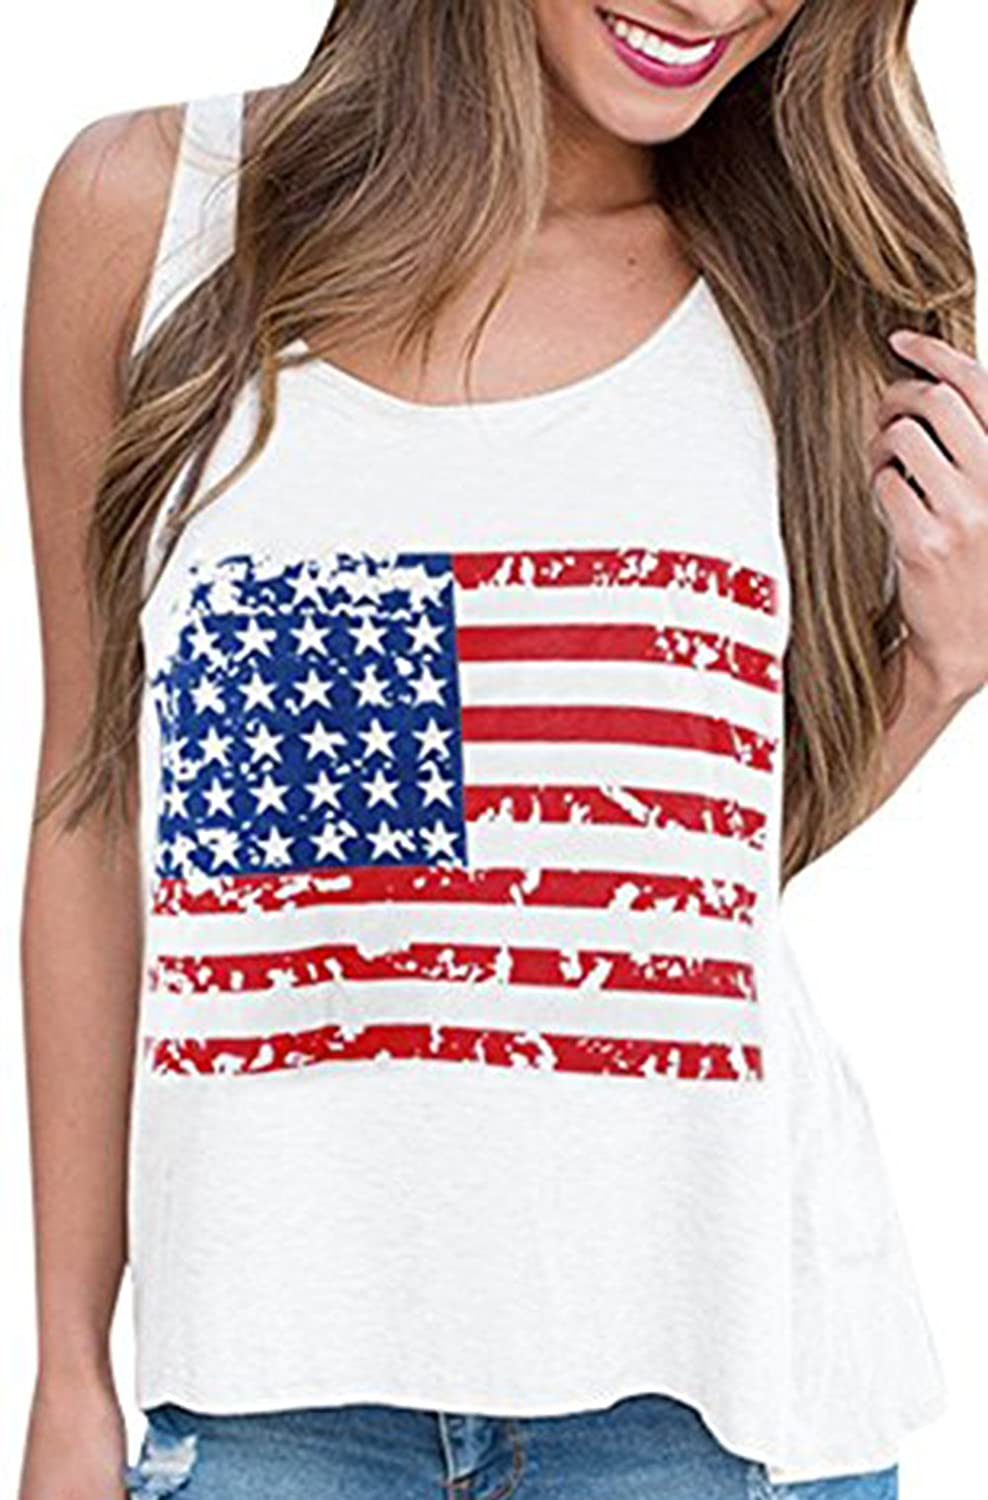 191cd464 The fabric is soft, beautifully american flag shirt women lightweight and  comfortable american flag shirt for women. Comfortable summer top for  women,short ...